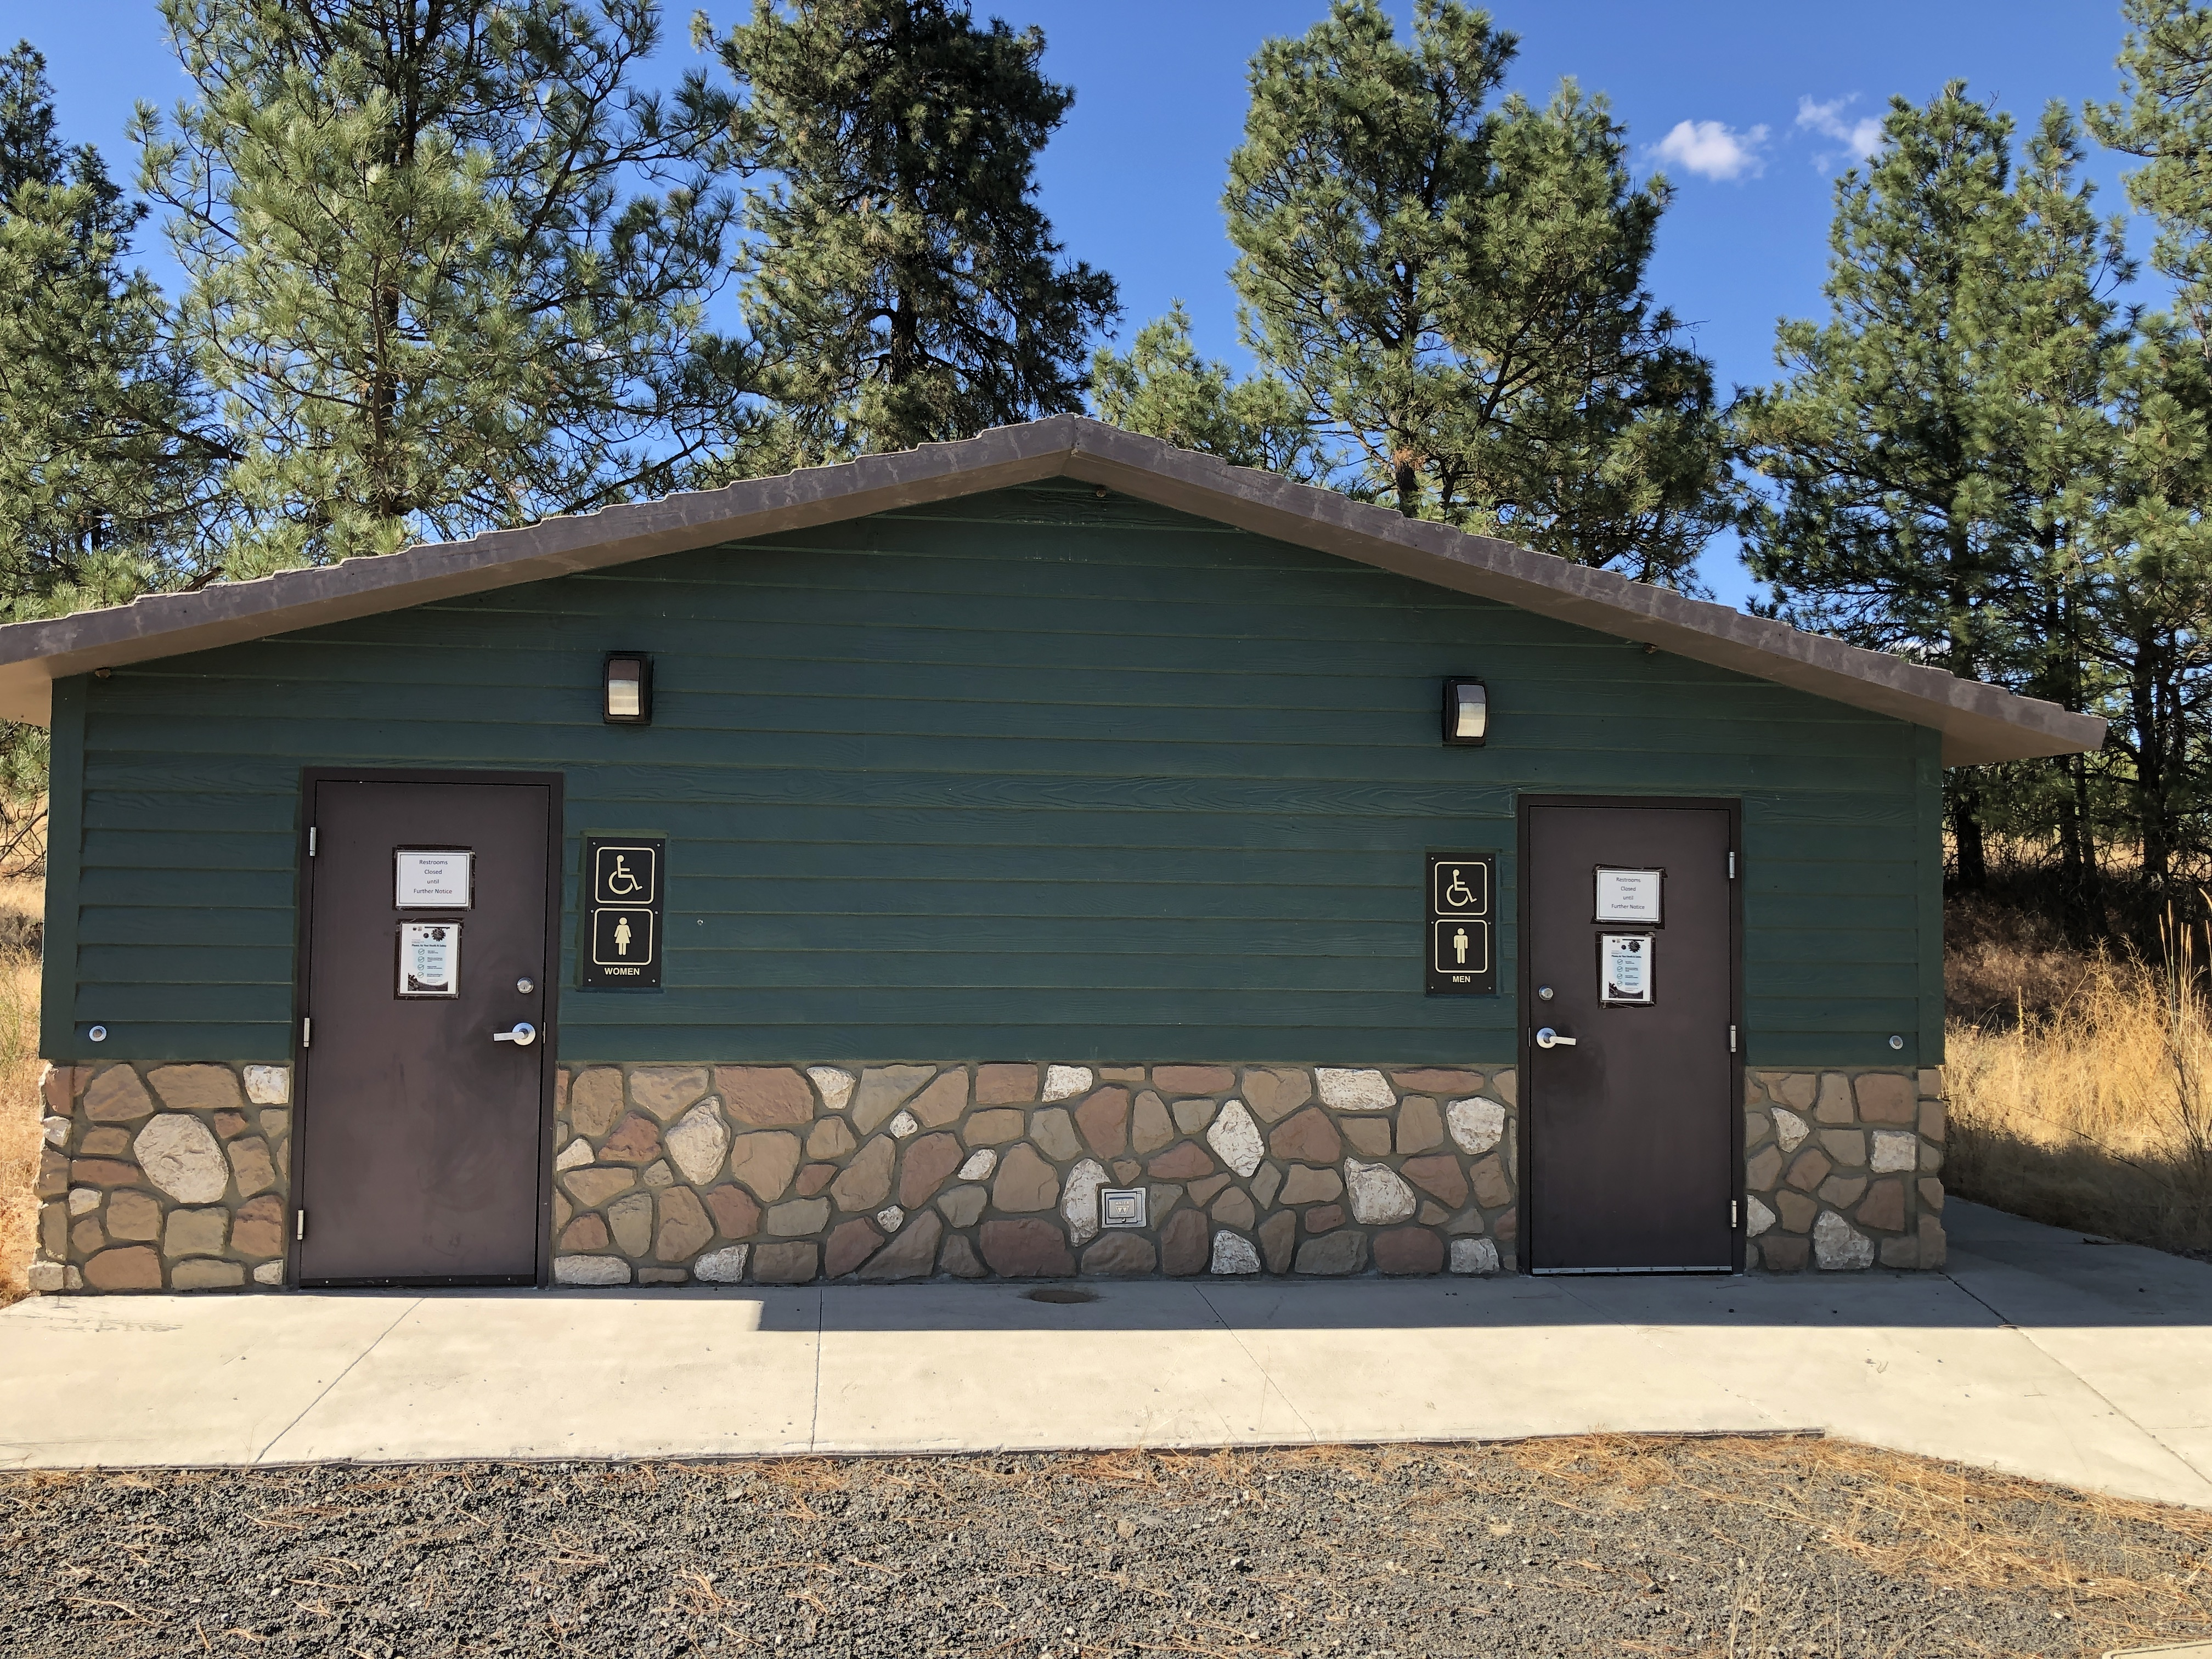 Building with men and women accessible restrooms